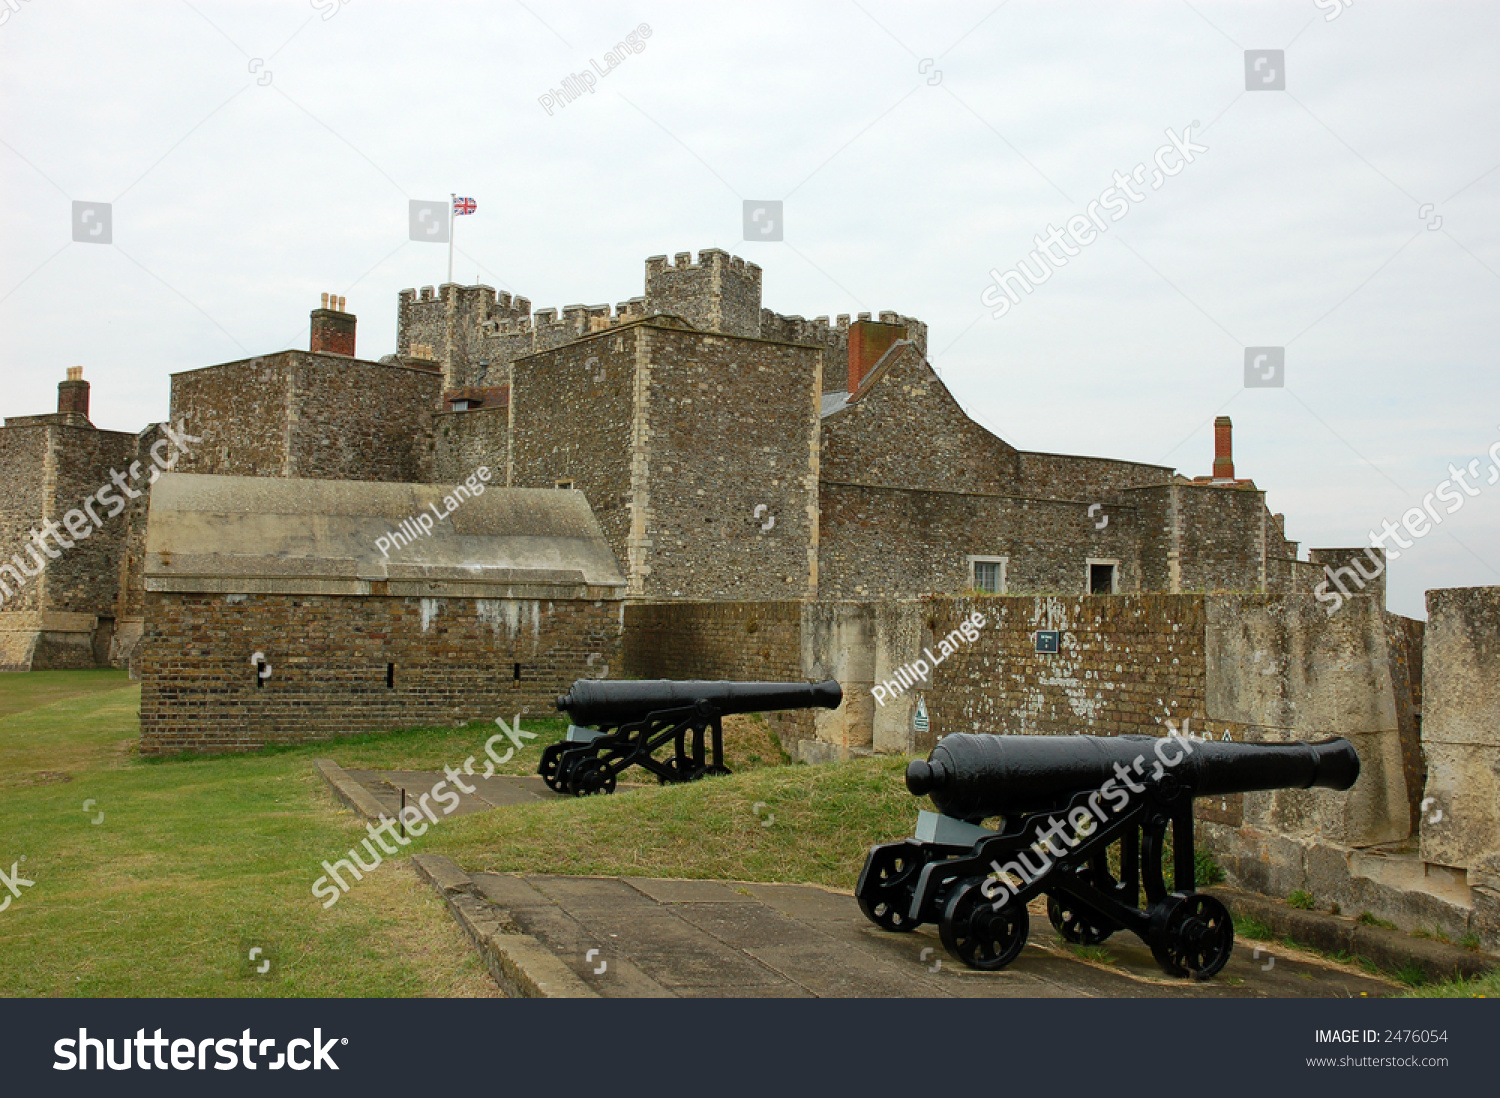 http://image.shutterstock.com/z/stock-photo-cannons-at-the-dover-castle-england-2476054.jpg